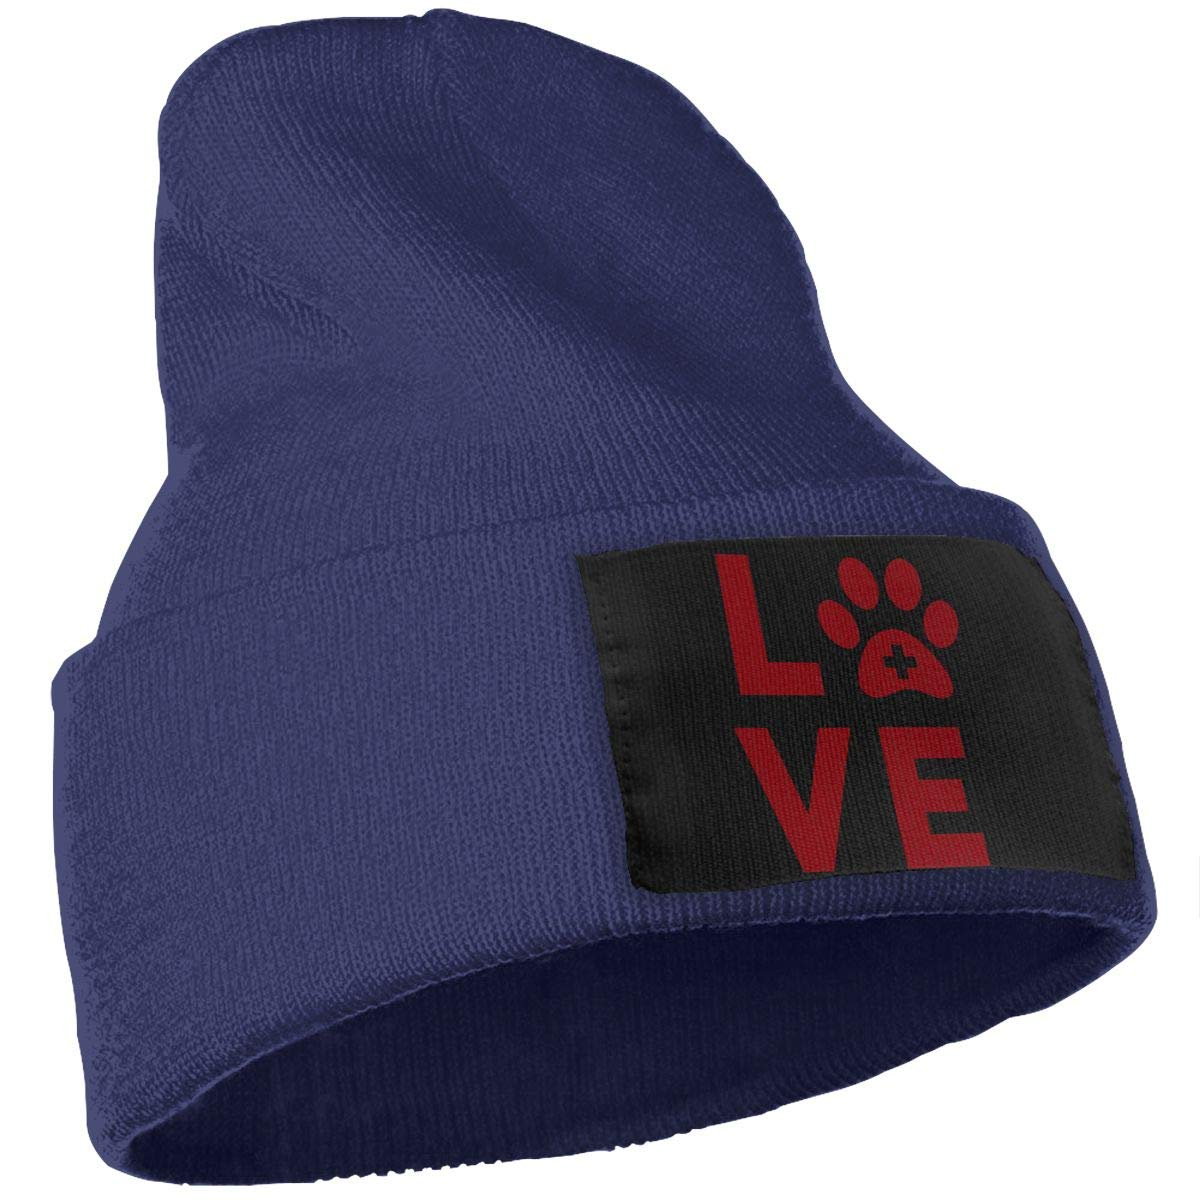 Love Vet Tech Paw Cute Beanie Hat Mens and Womens 100/% Acrylic Knitted Hat Cap